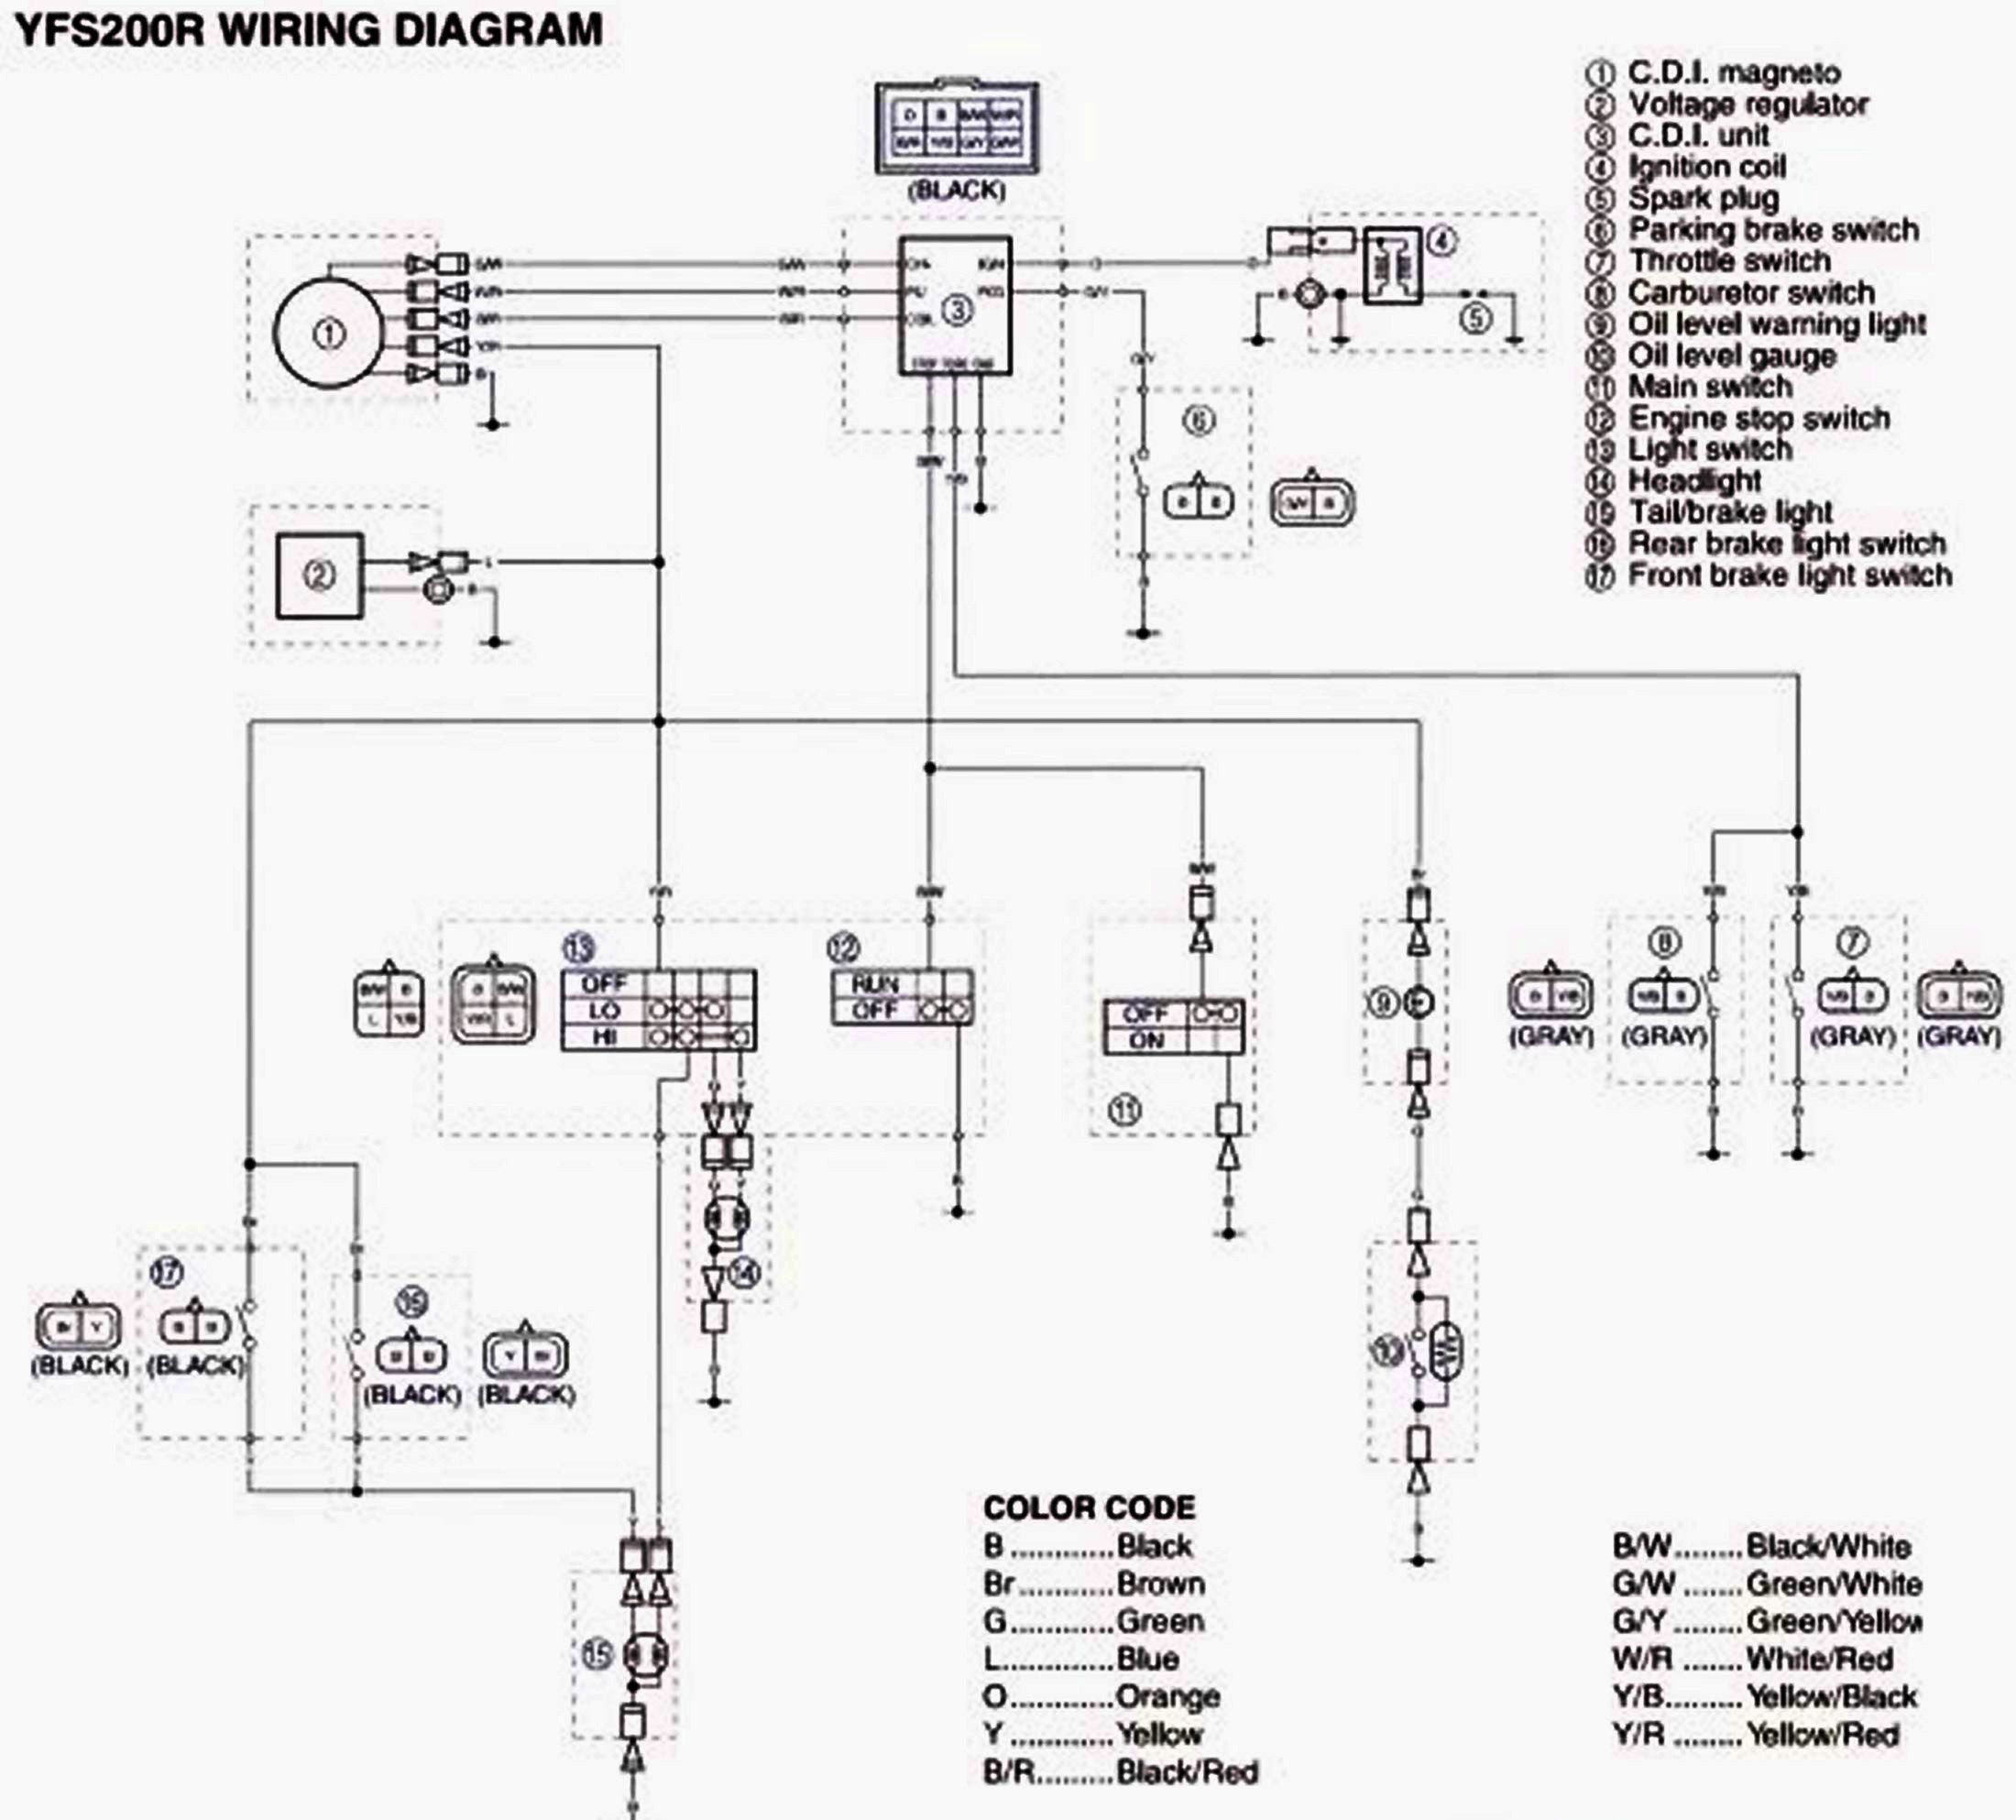 Yamaha G1 Wiring Harness Diagram Libraries G1a Ignition 1994 Blaster Data Schemastock Diagrams Blasterforum Com 2001